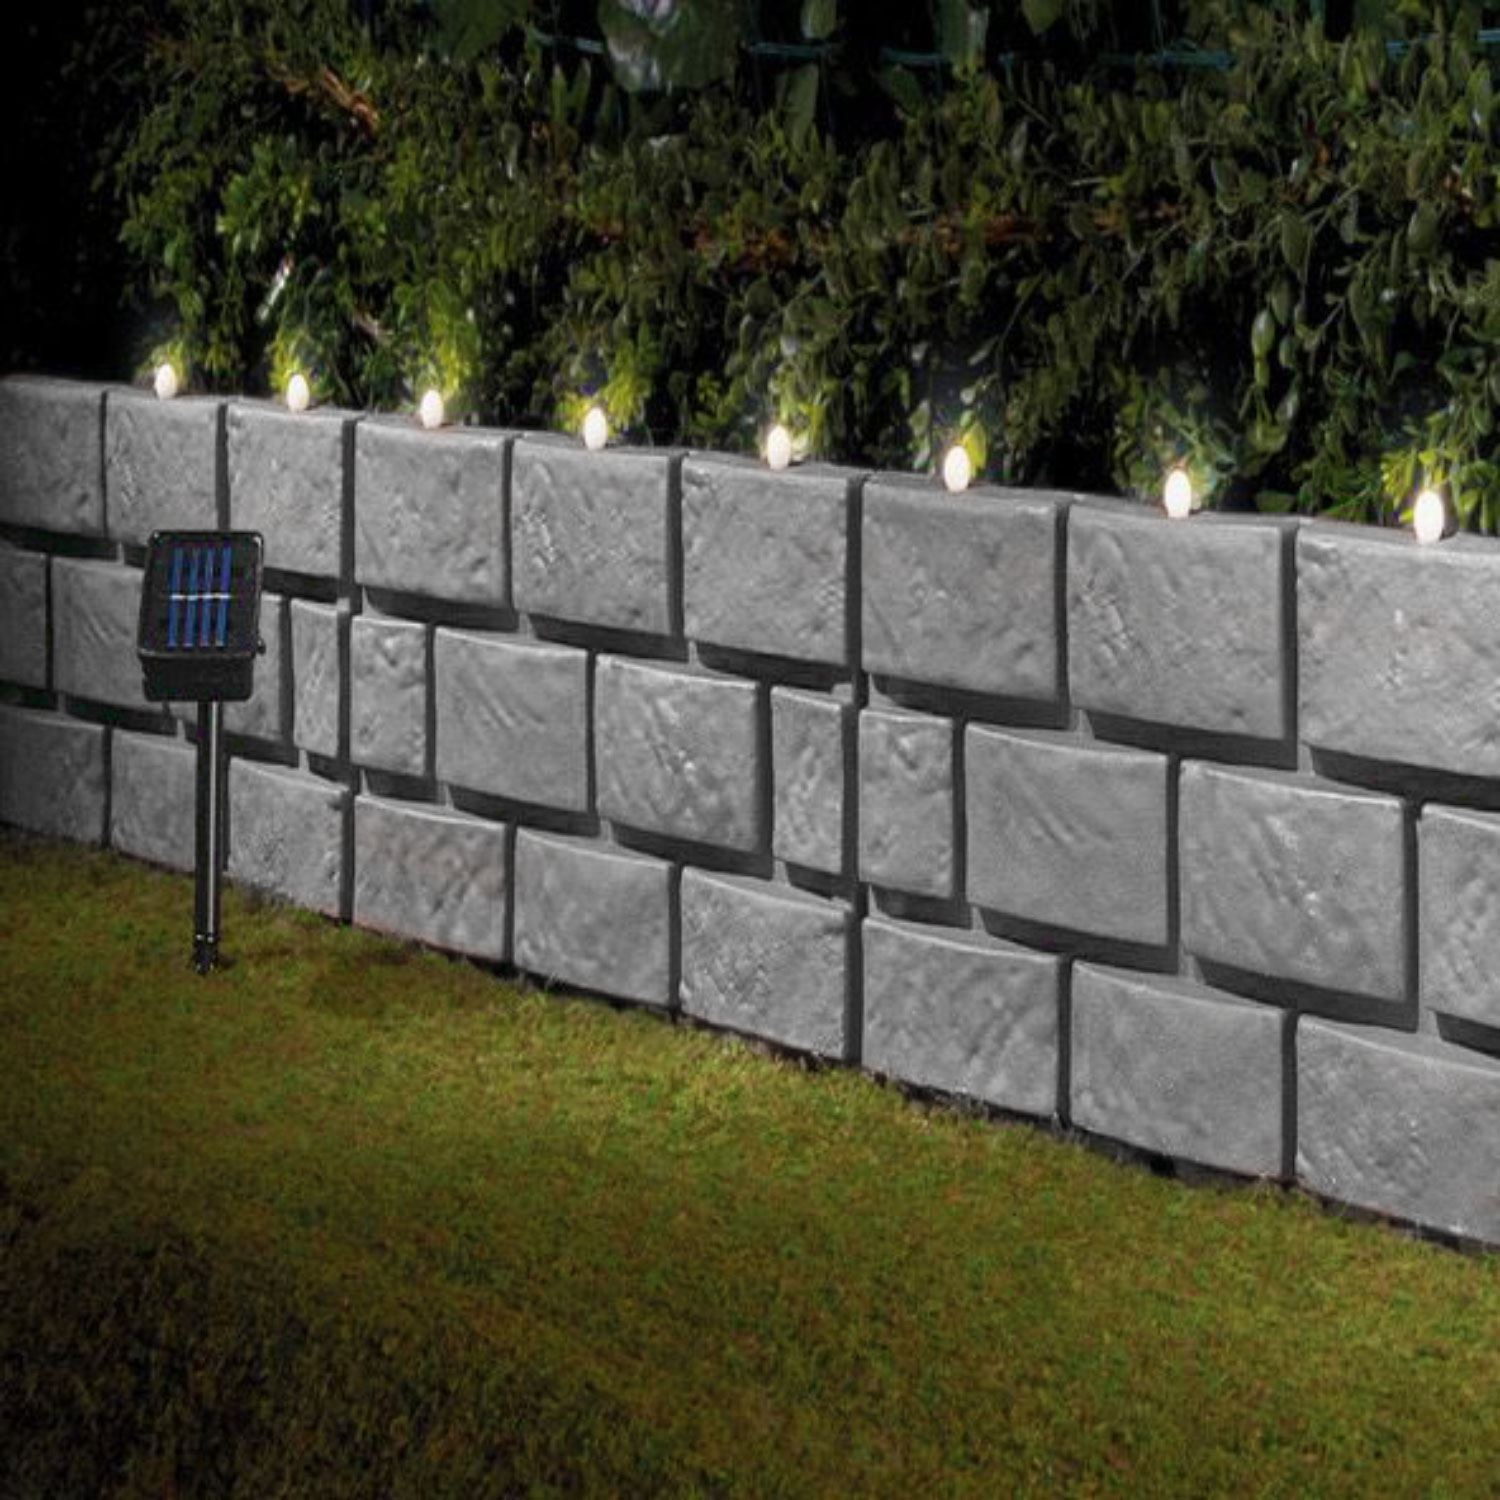 Instant Brick Effect Border Lawn Edging With Led Lights